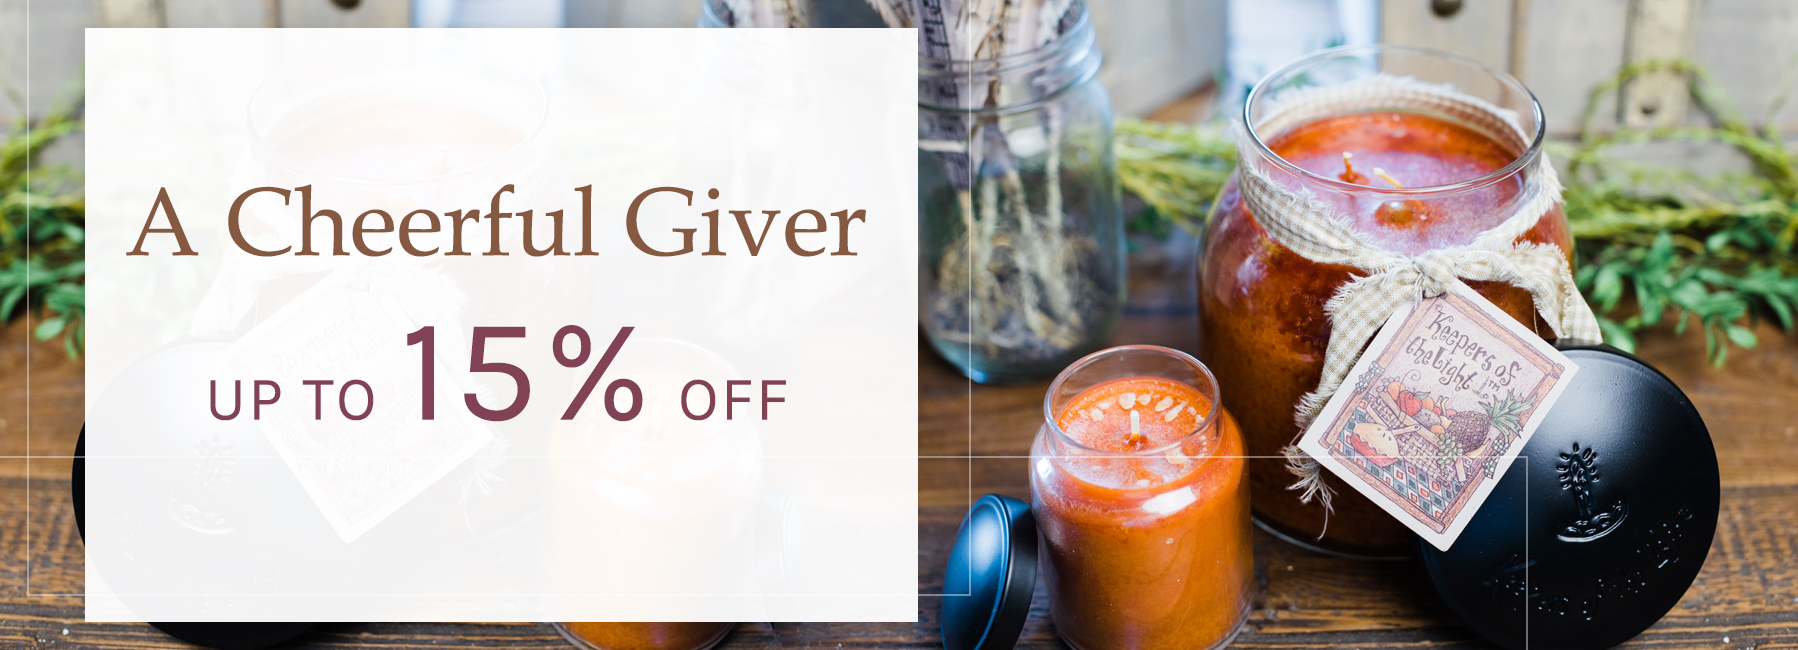 A Cheerful Giver - Up To 15 Percent OFF